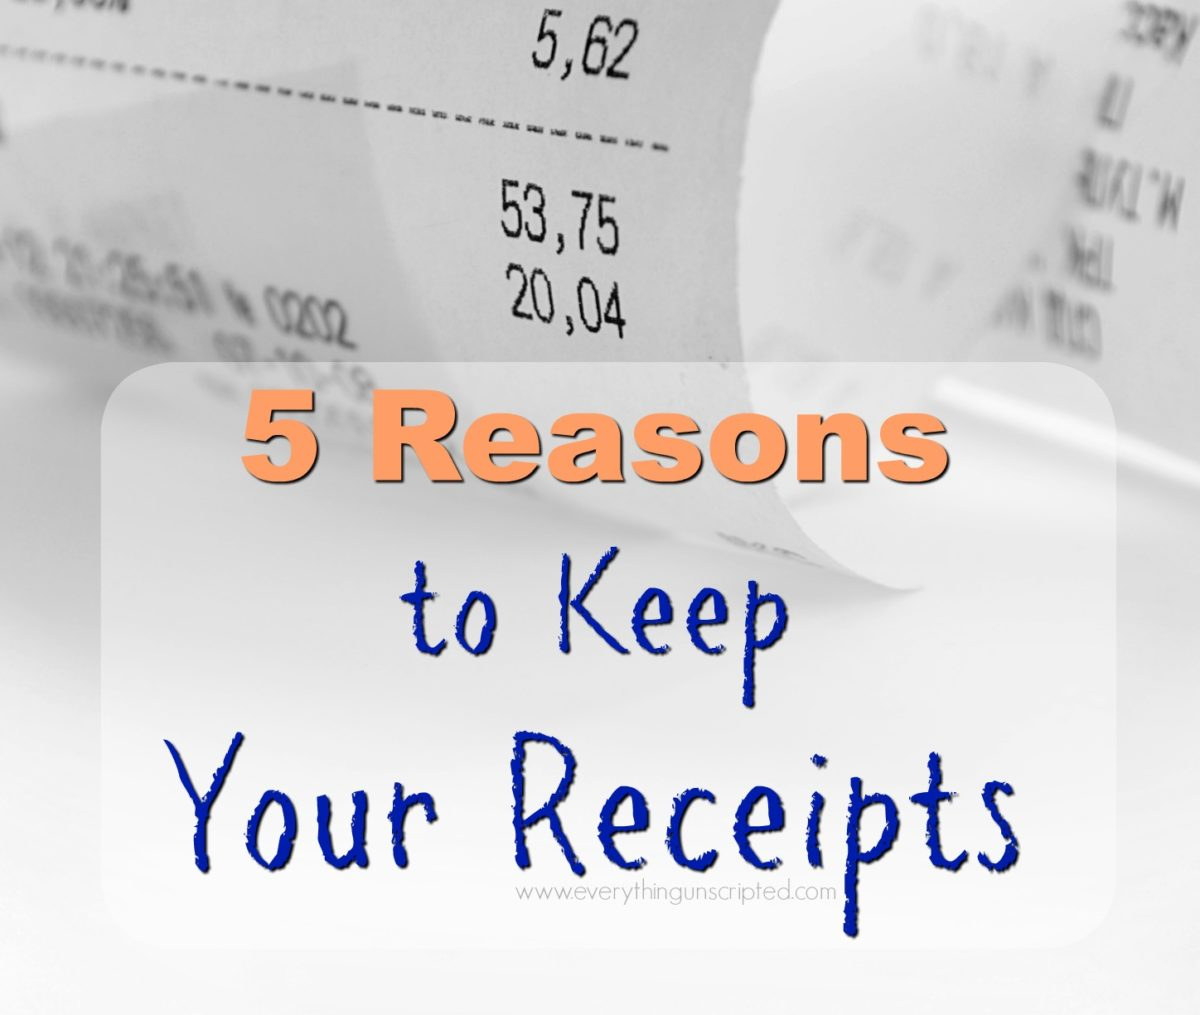 5 Reasons To Keep Your Receipts